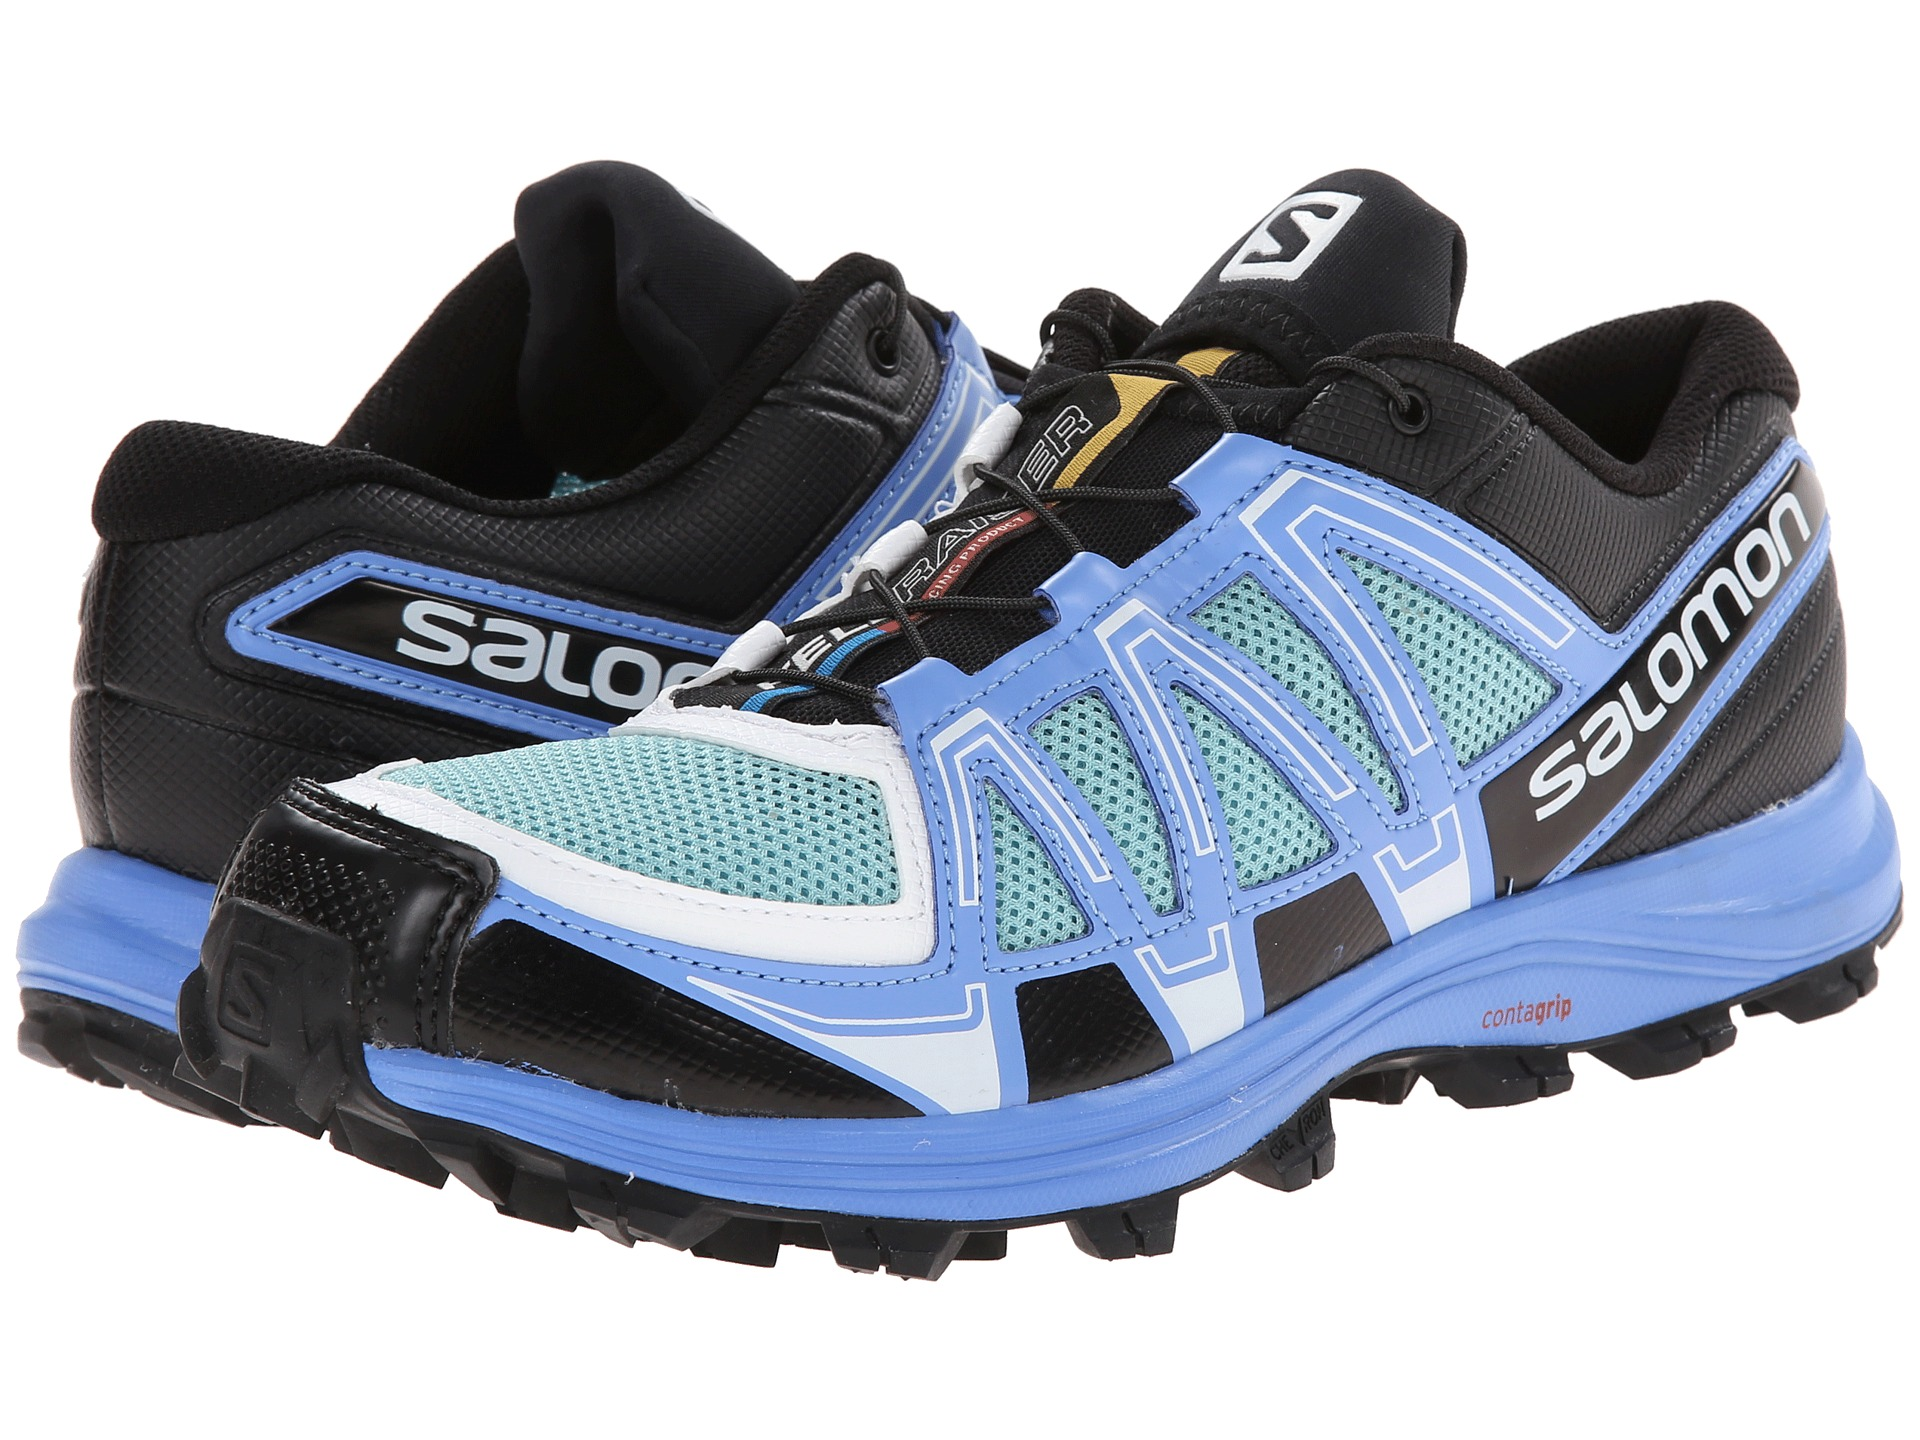 Czech Mens Salomon Fell Raiser - Salomon Fellraiser~2